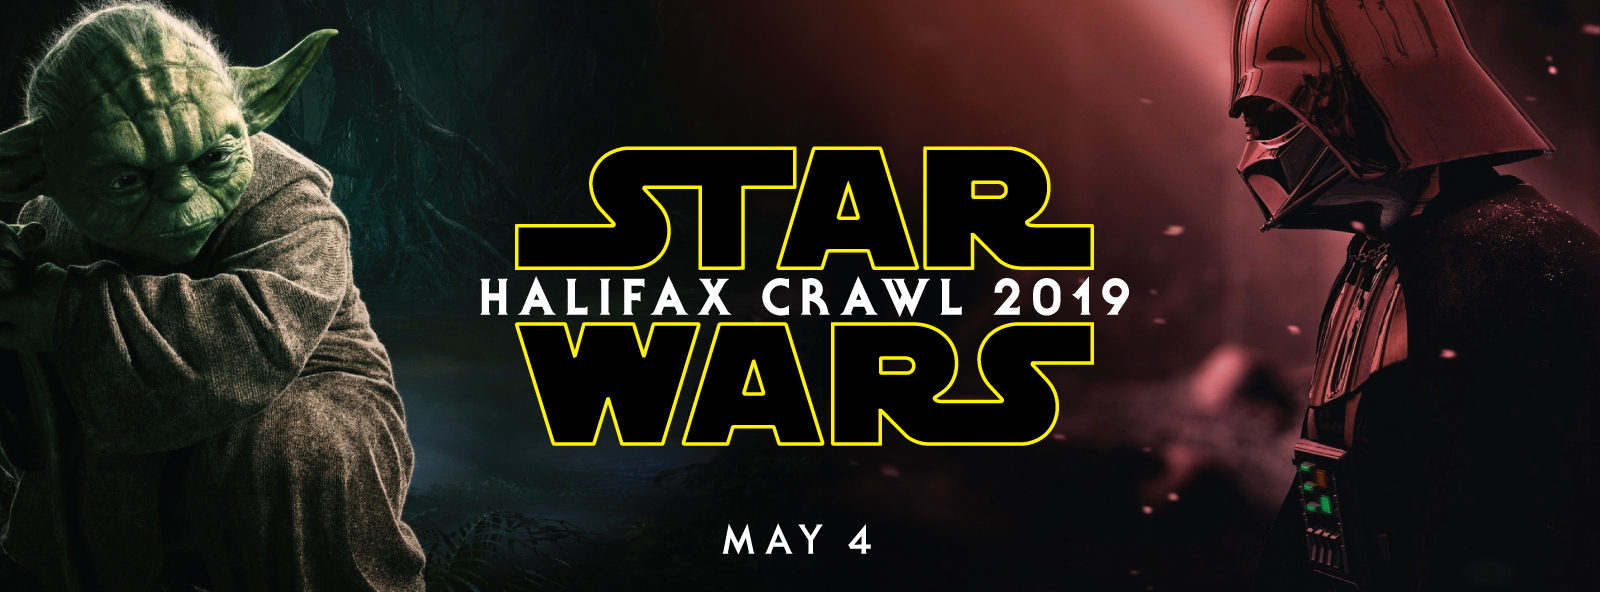 2nd Annual Star Wars Crawl - Dart Frog Events